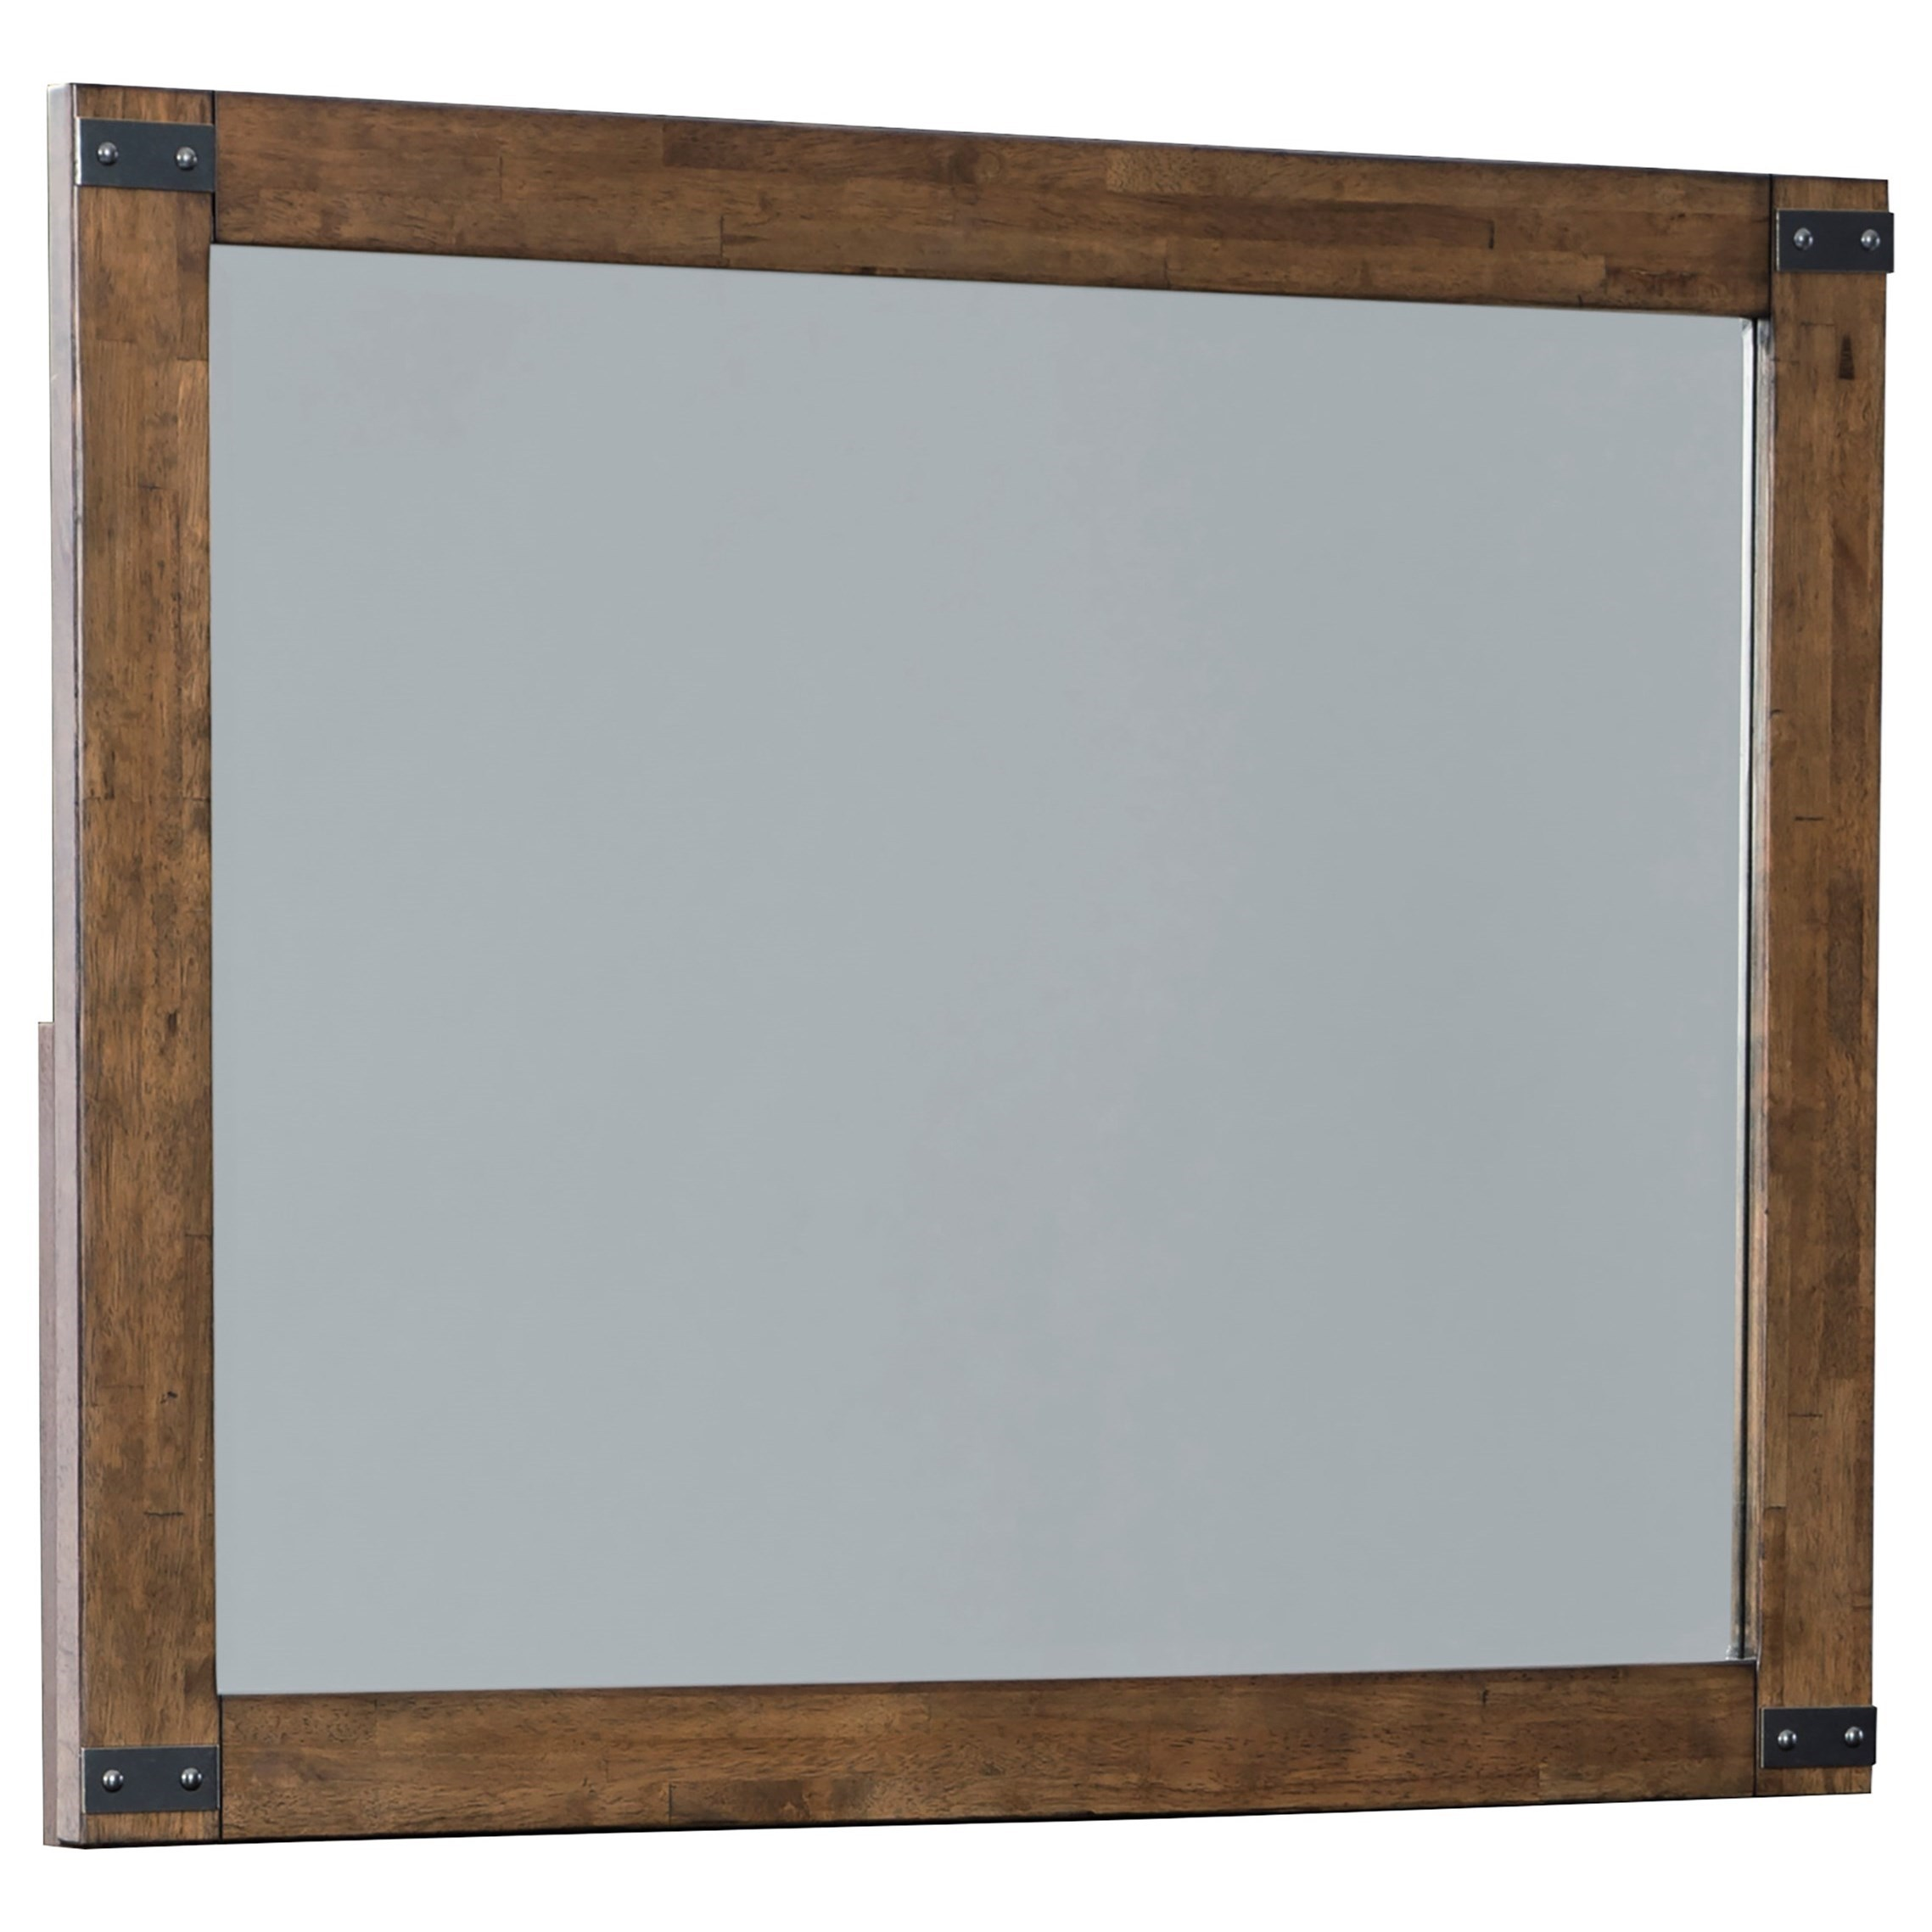 Wyattfield Bedroom Mirror by Benchcraft at Beds N Stuff